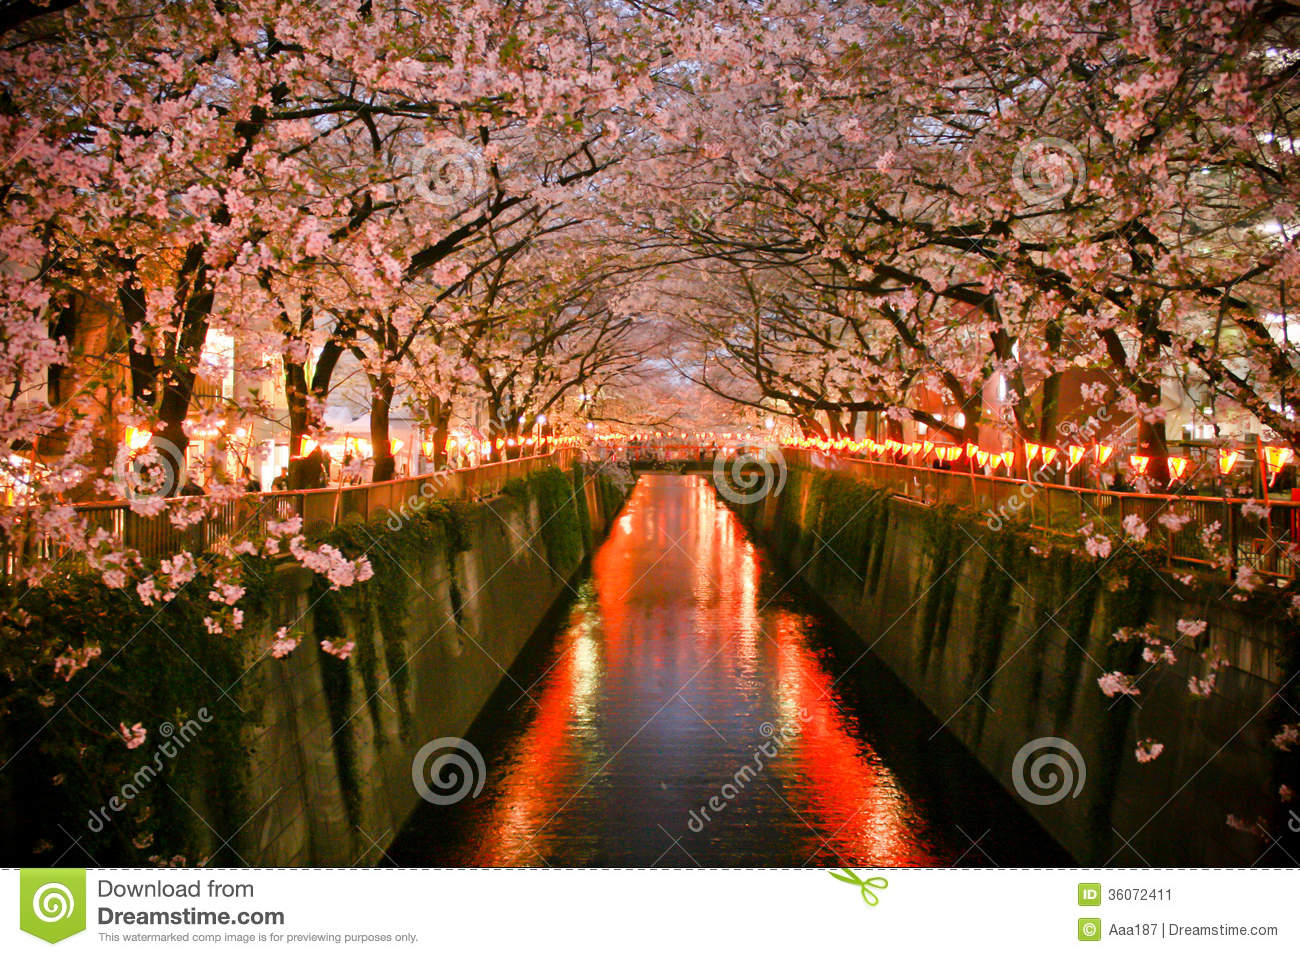 Tunnel of Cherry blossom (Sakura blooming) in at Meguro, Tokyo, Japan.